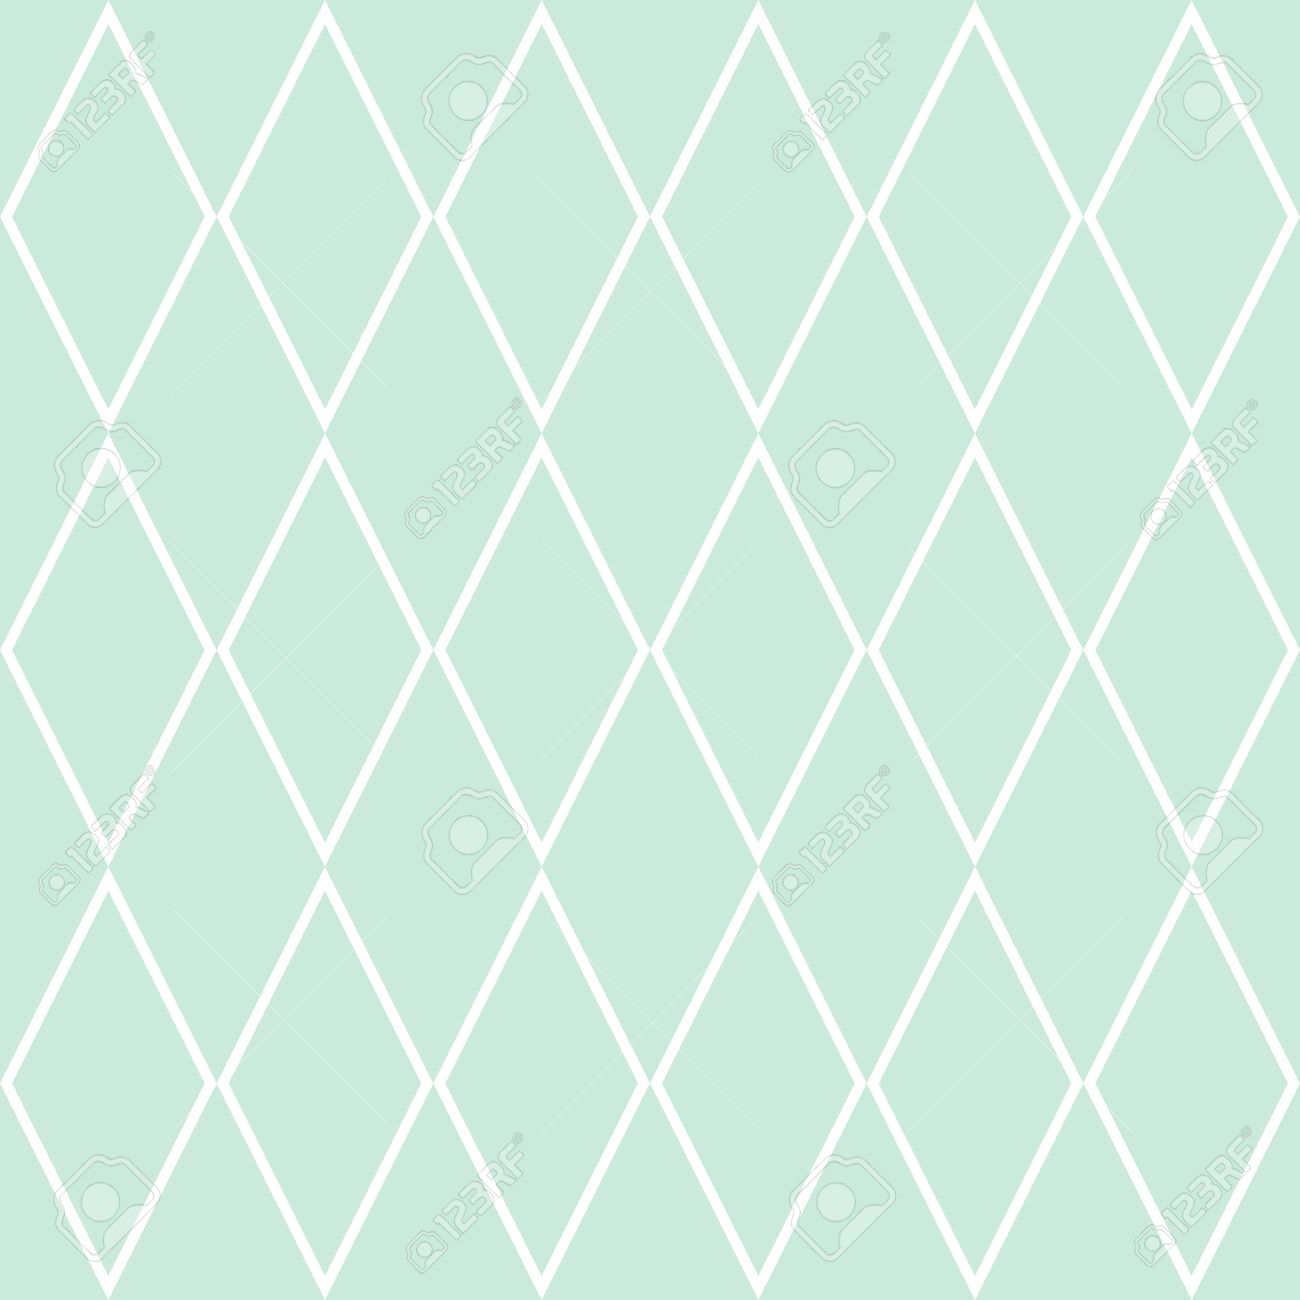 Tile Pattern Or Mint Green And White Wallpaper Background Stock Vector